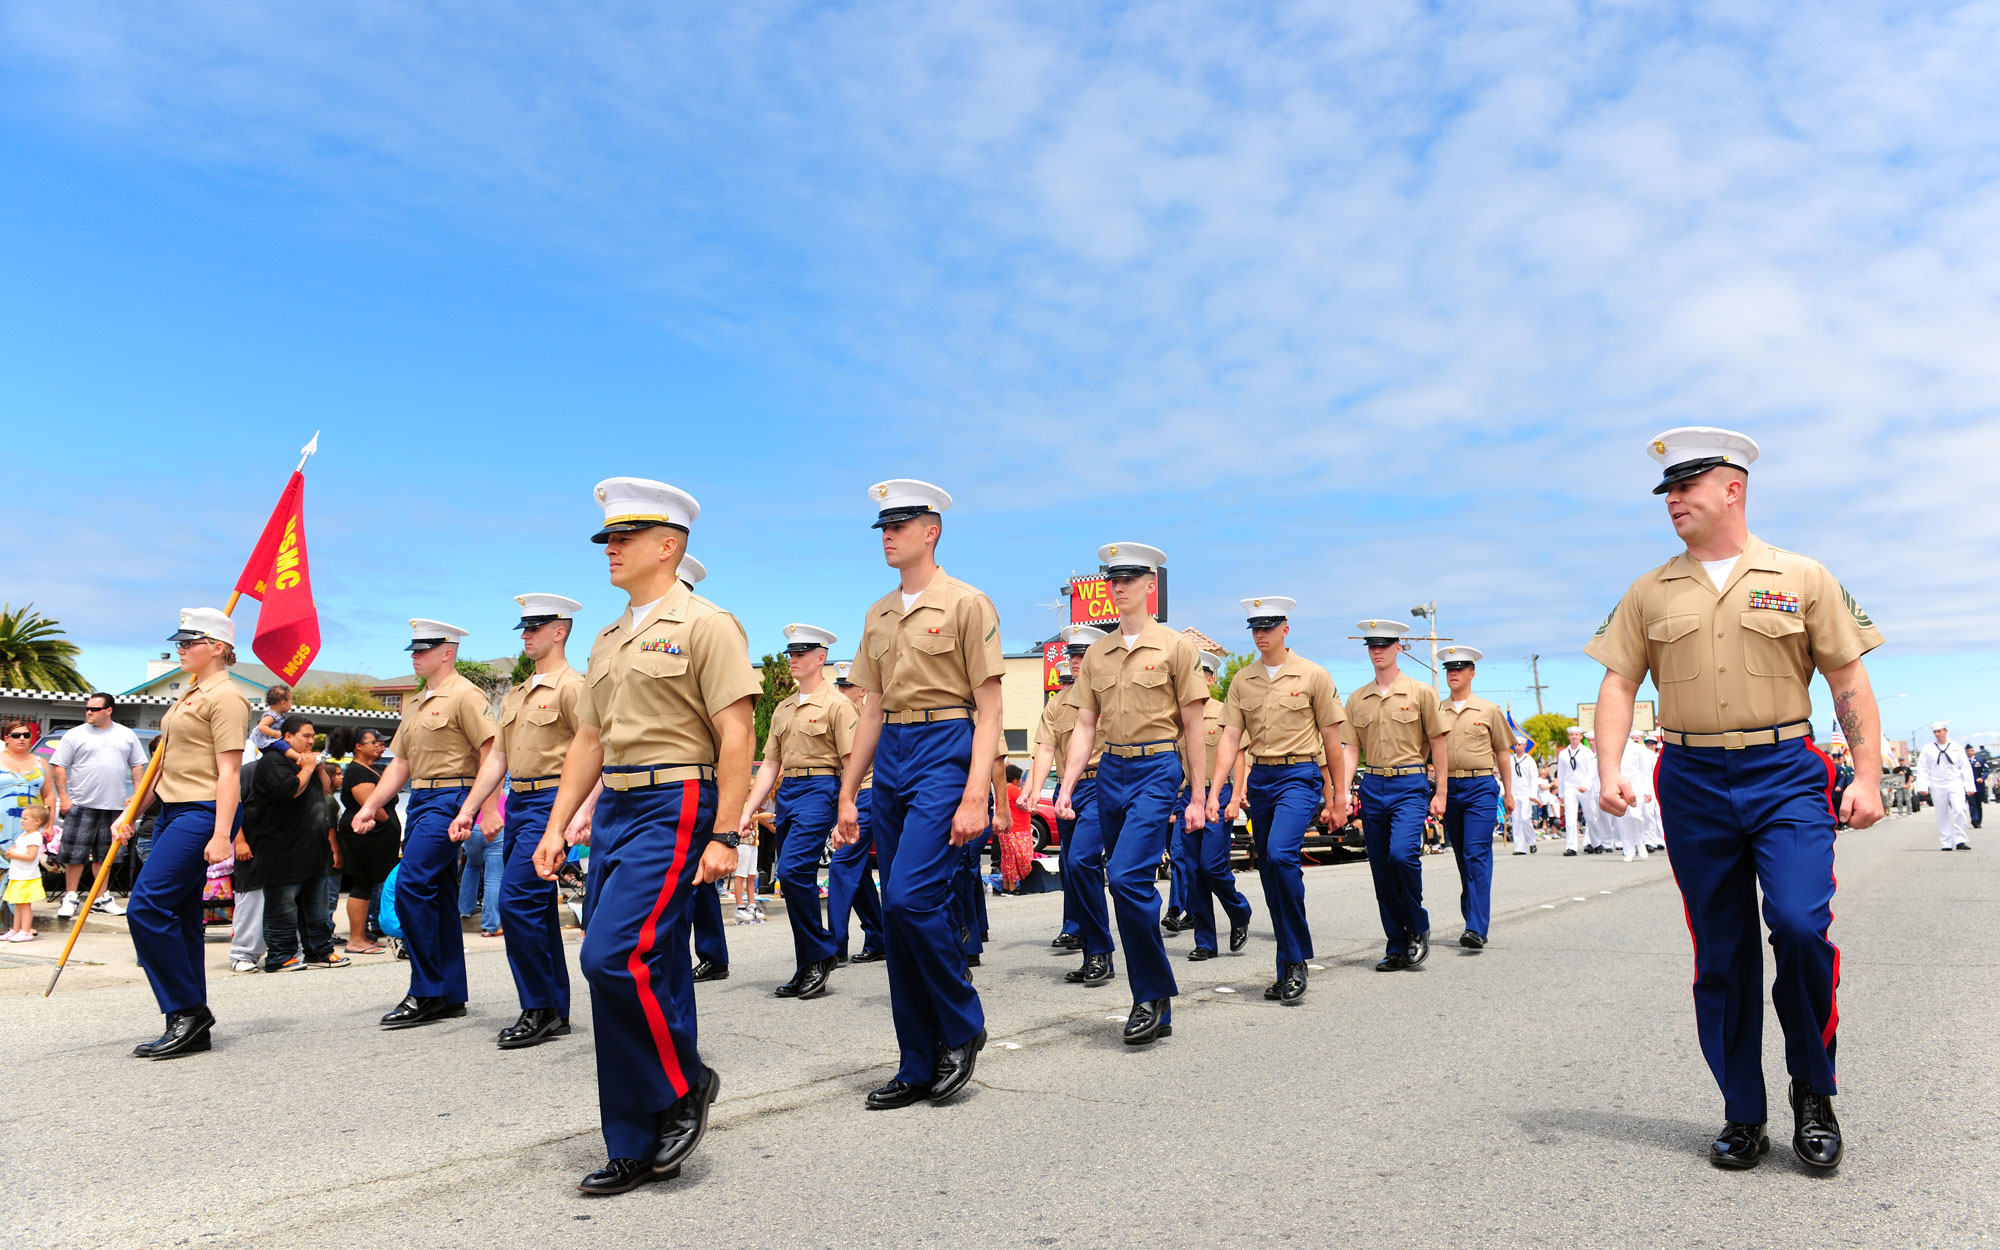 Independence Day celebrations by participating in Seaside's 65th Parade of Champions